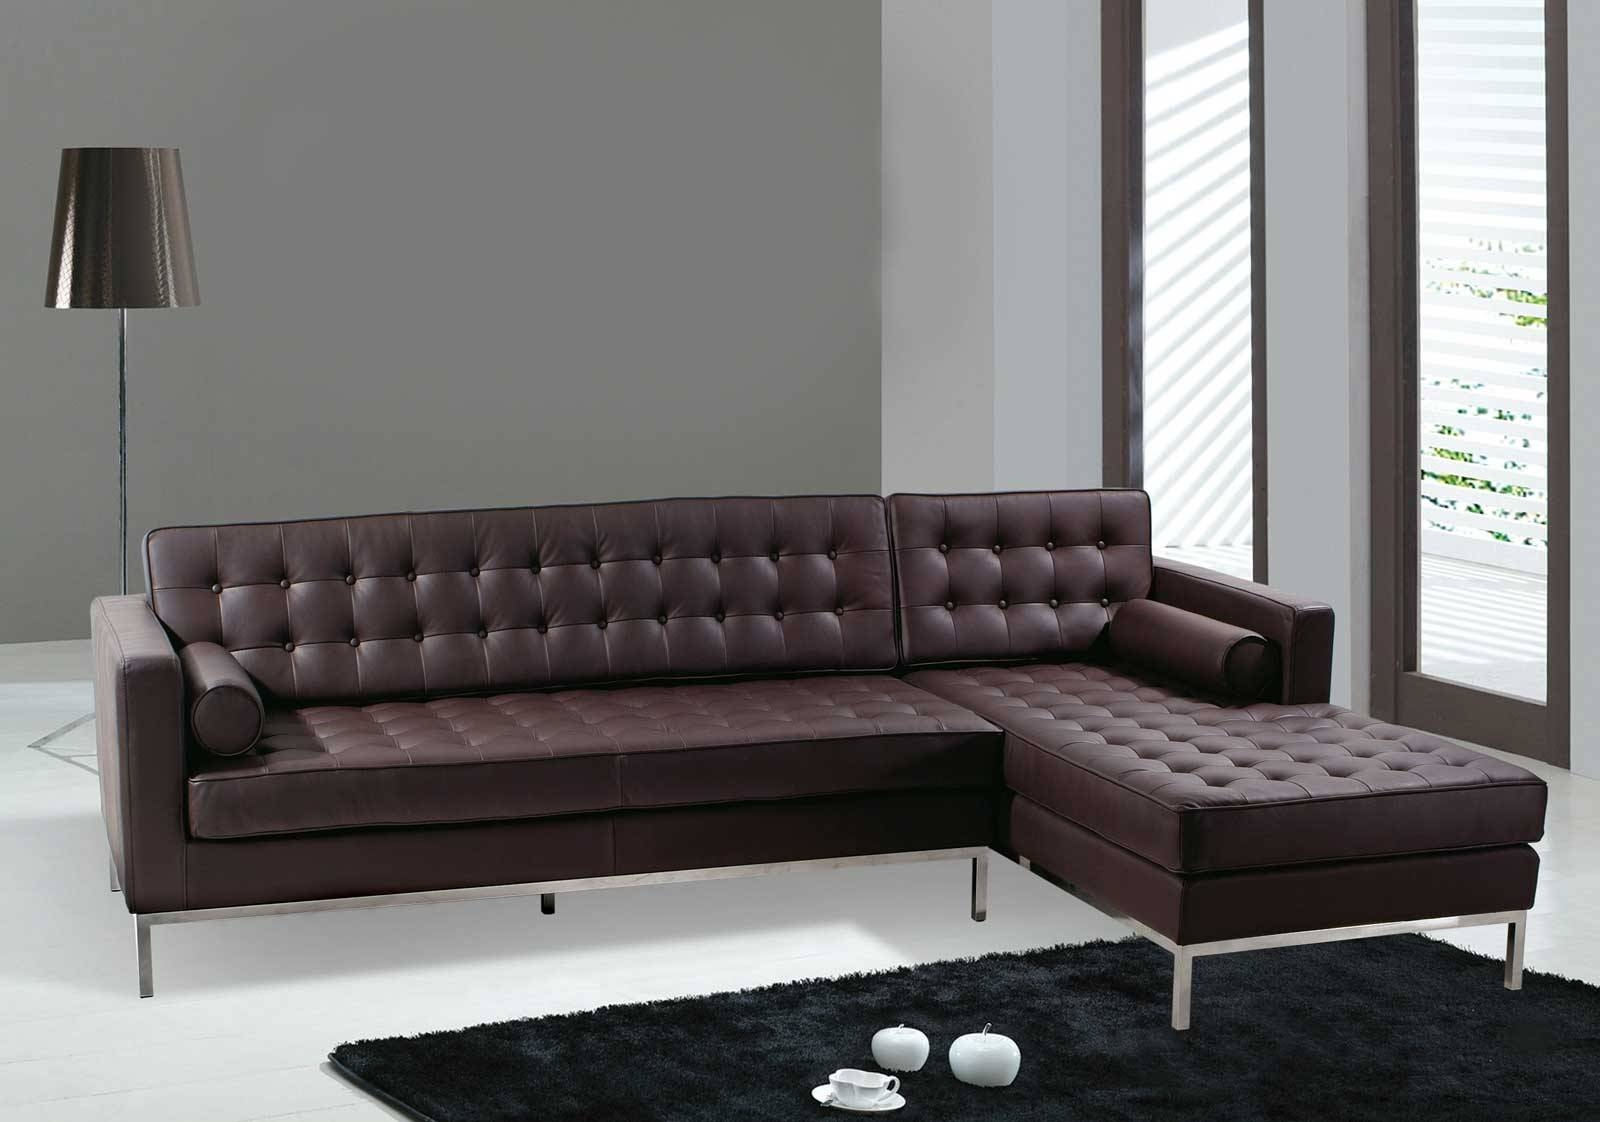 White Tufted Leather Sofa : Dye Tufted Leather Sofa – Home Design for Leather Sofas (Image 30 of 30)